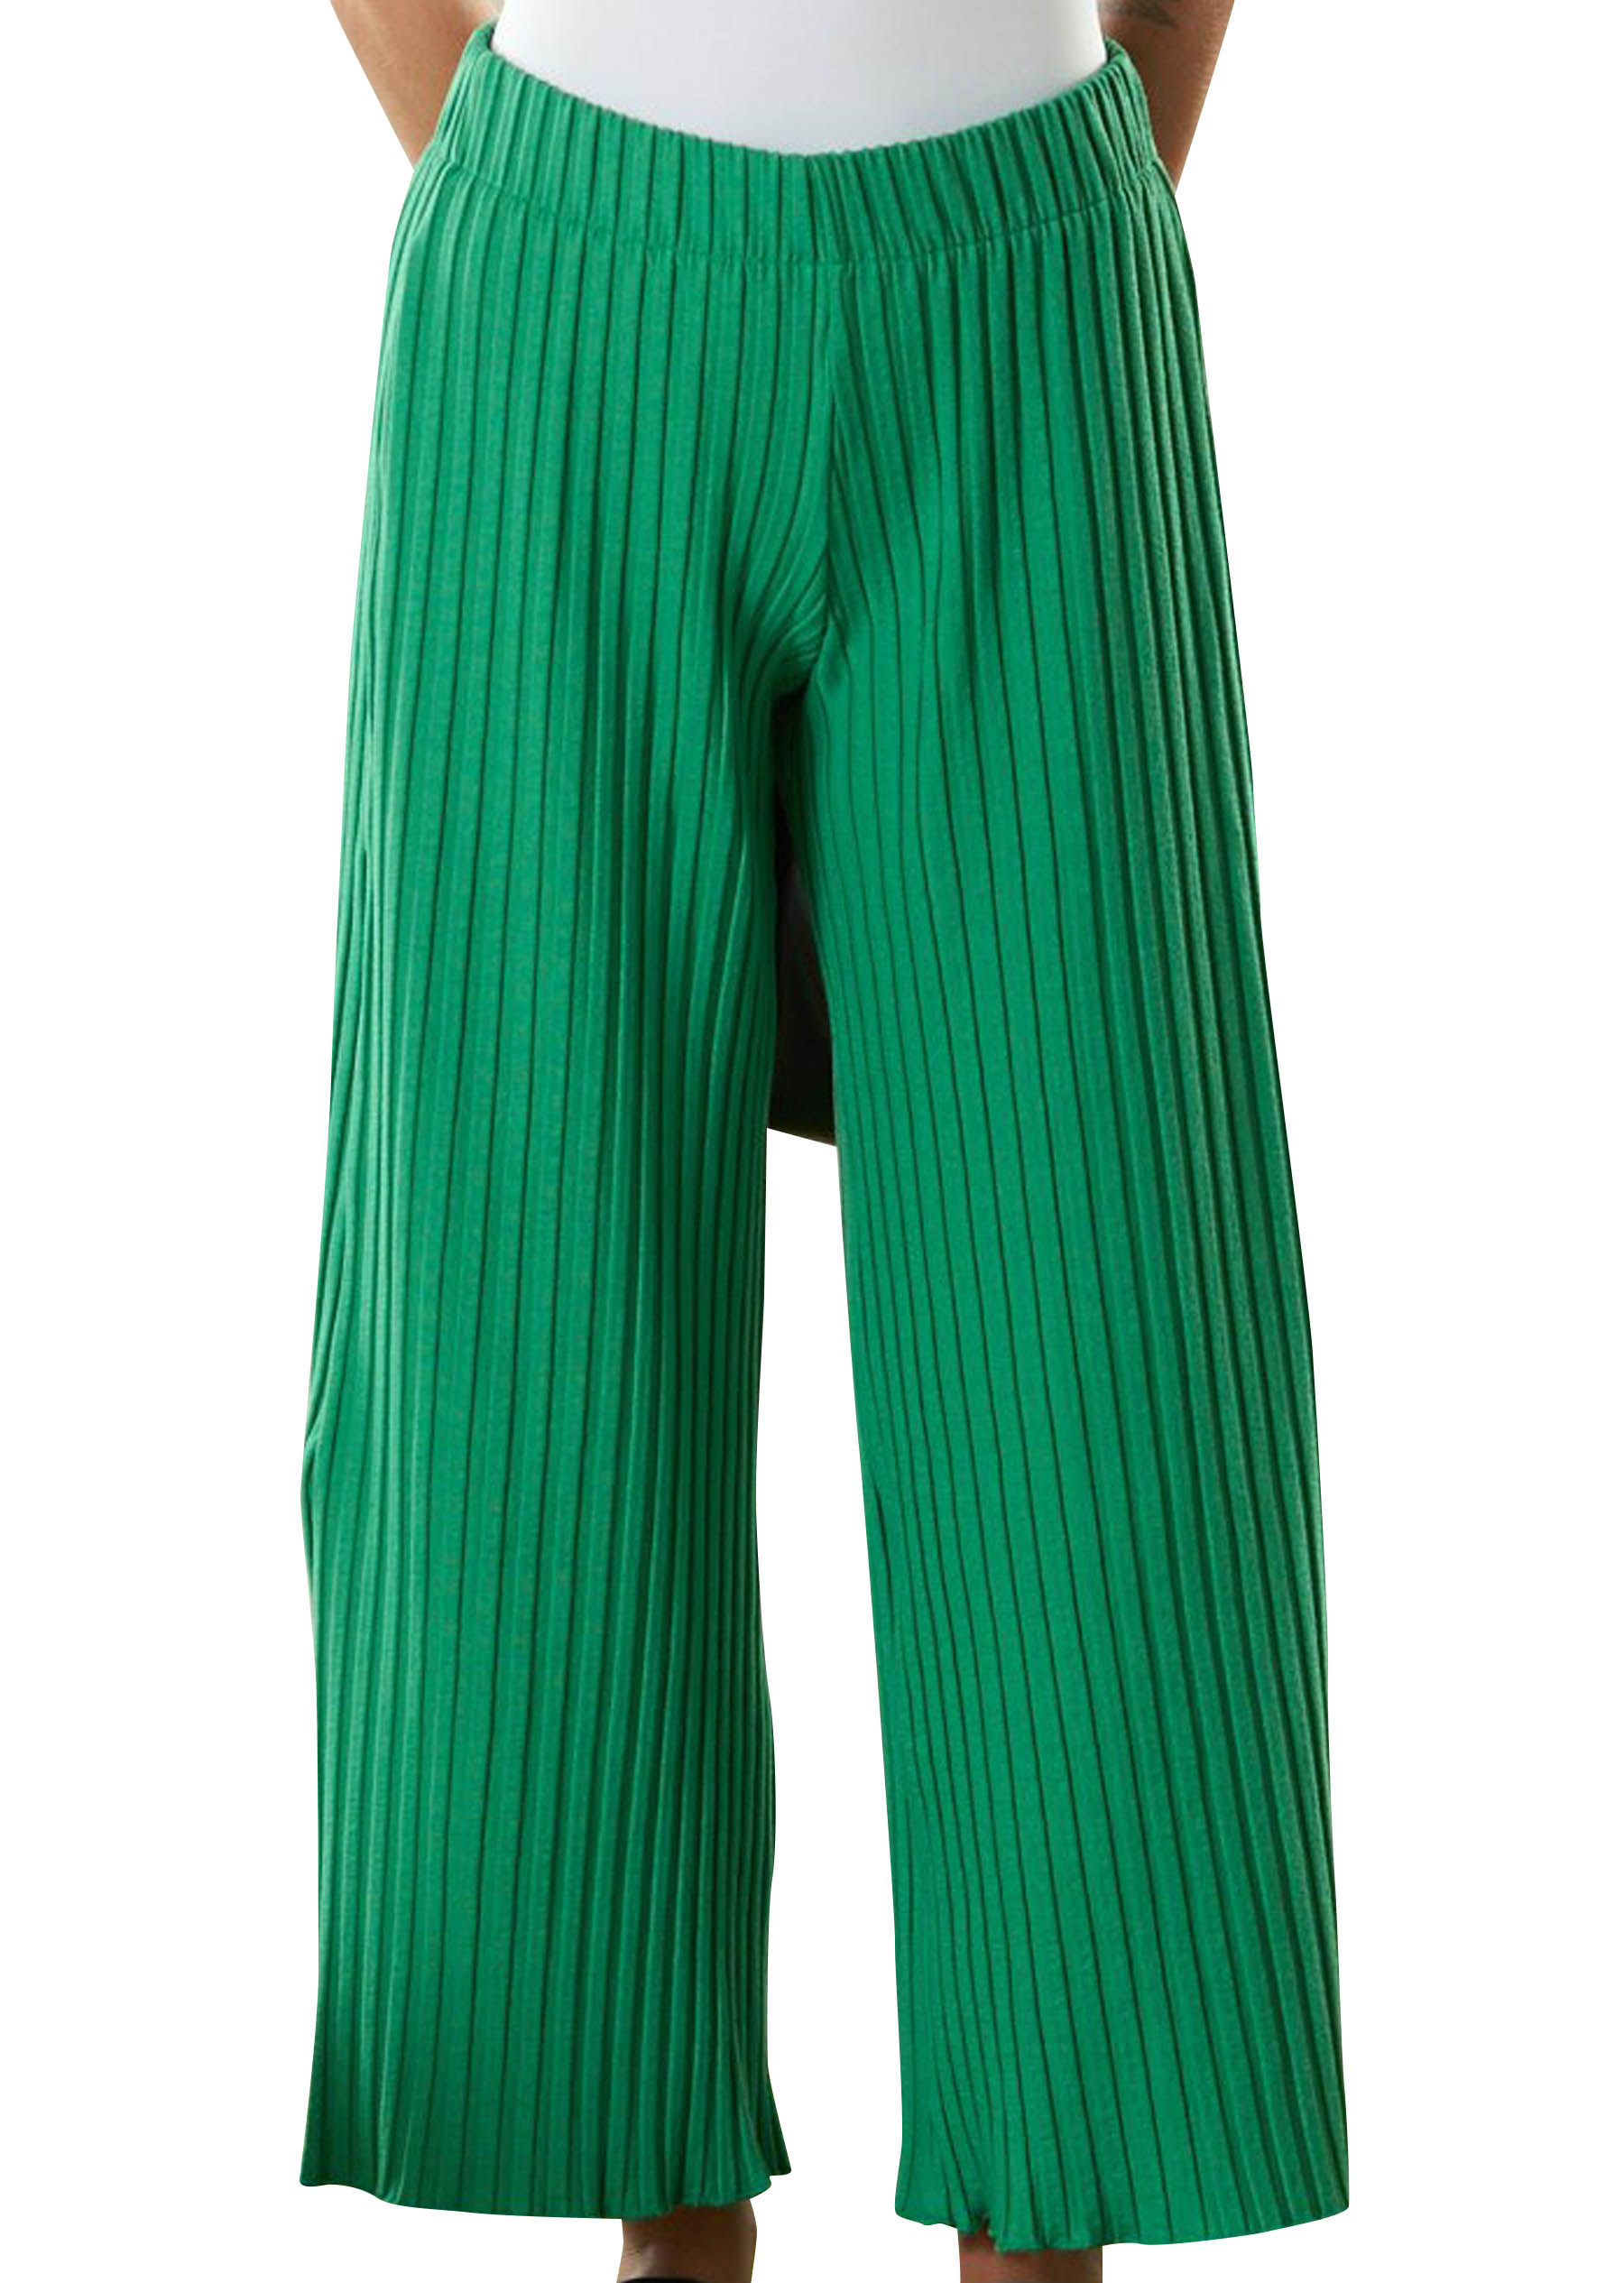 RIB Alder Pant in Jungle Green by Simon Miller - 1